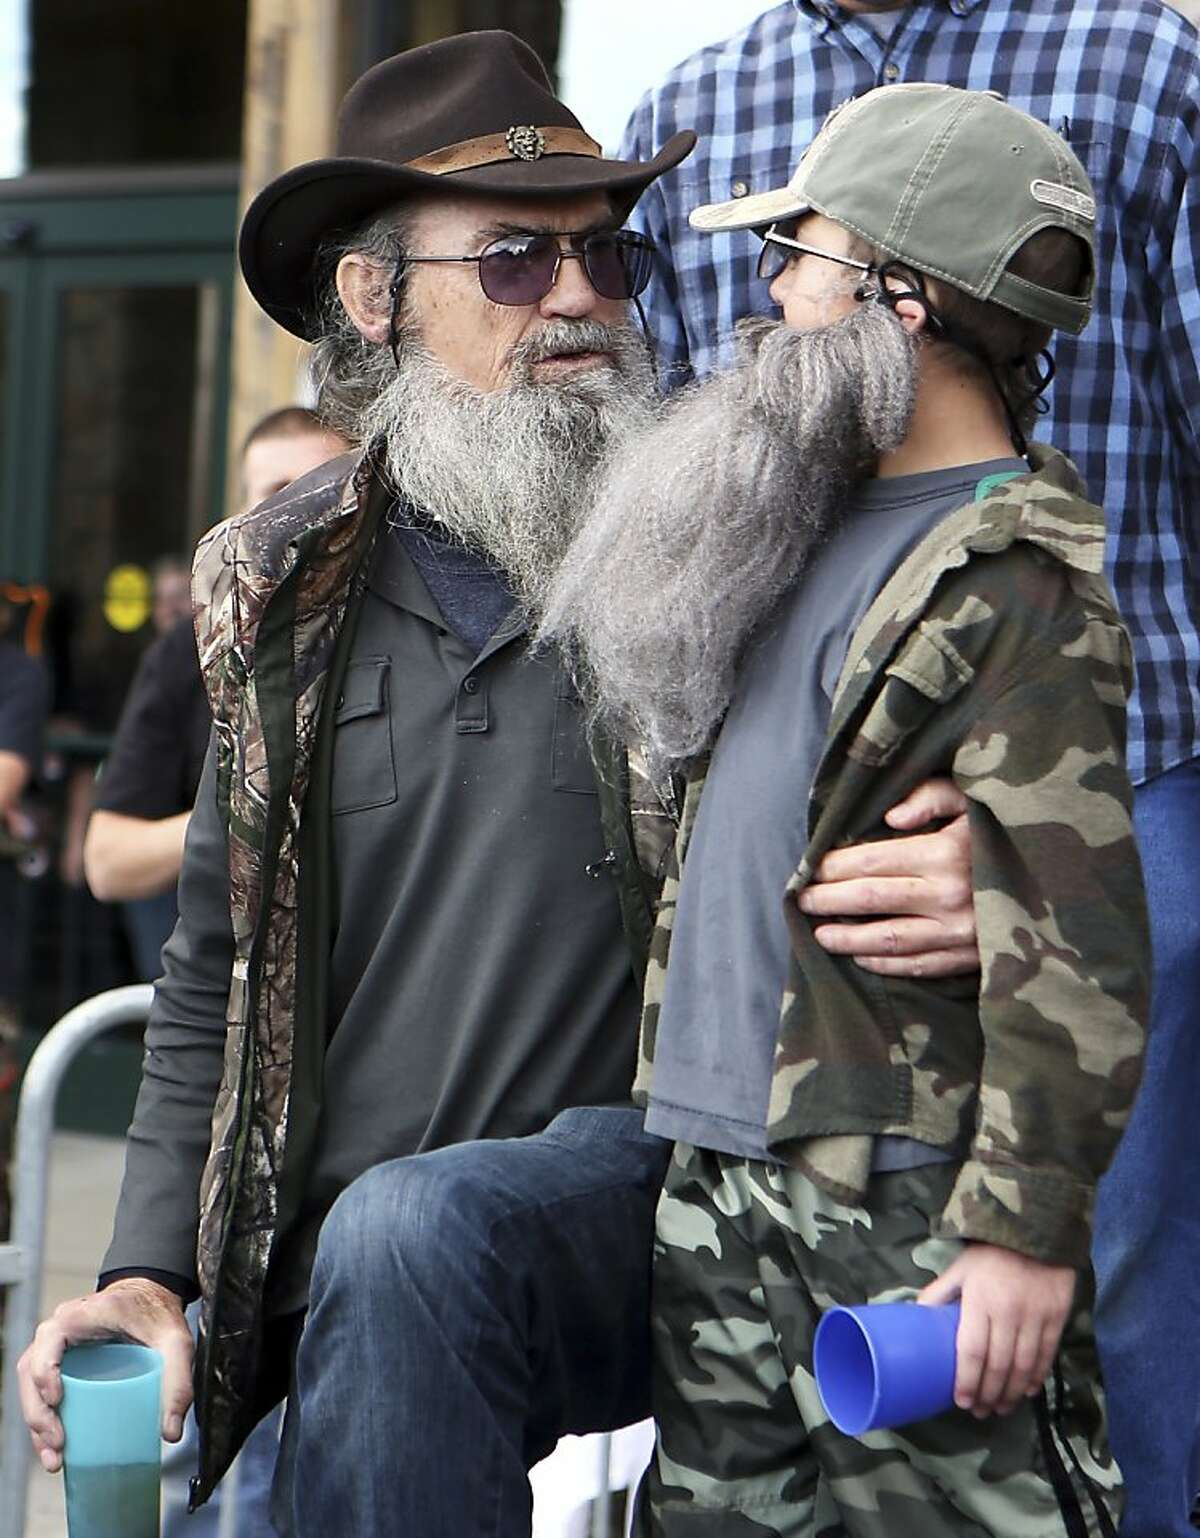 You look just like me when I was 12: Si Robertson of A&E's